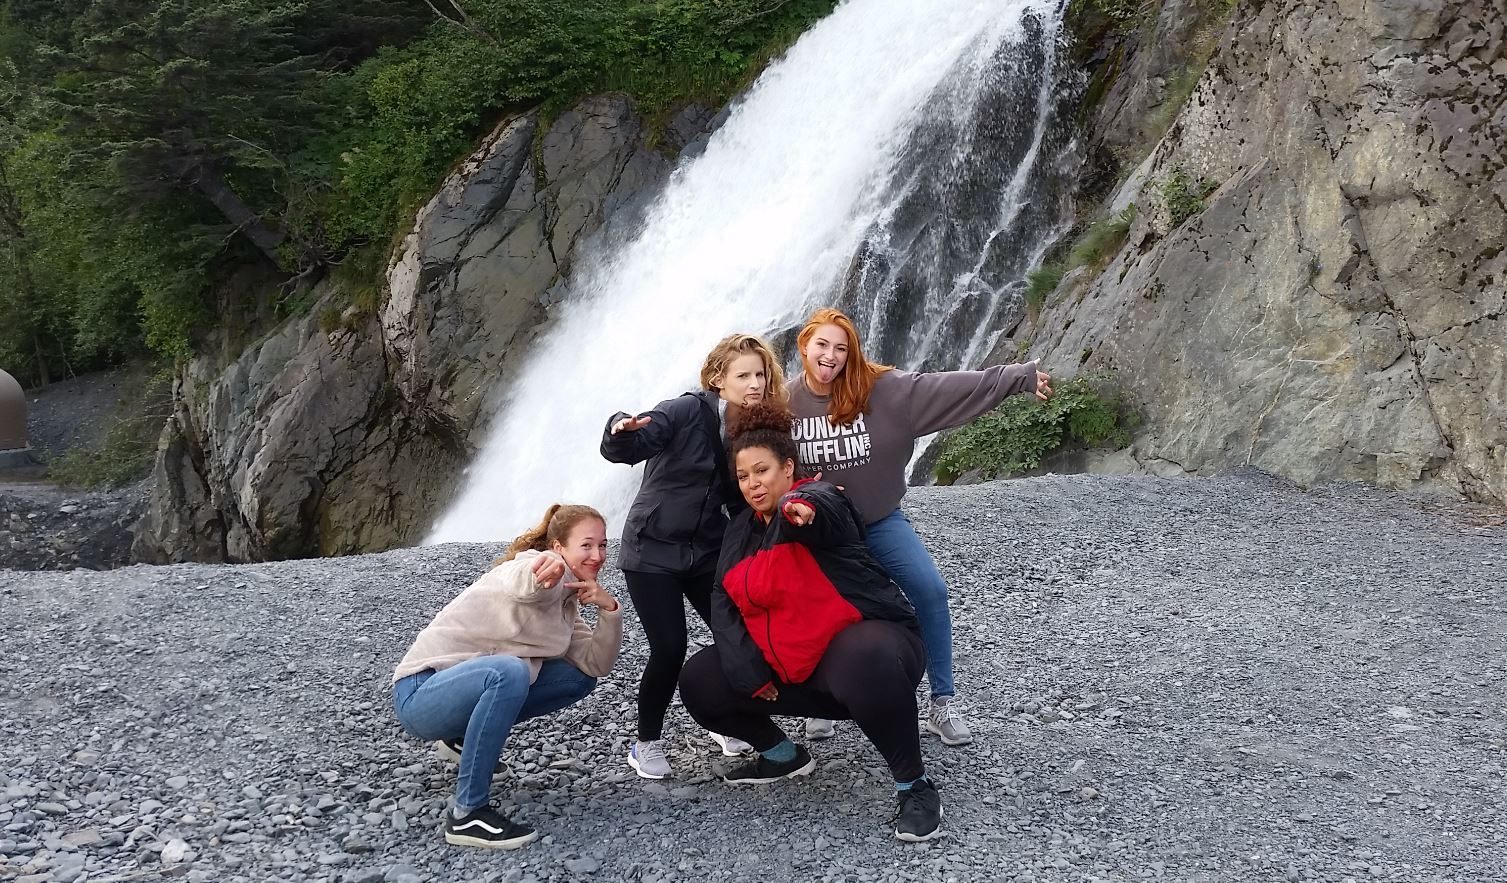 Girls pose in front of waterfall